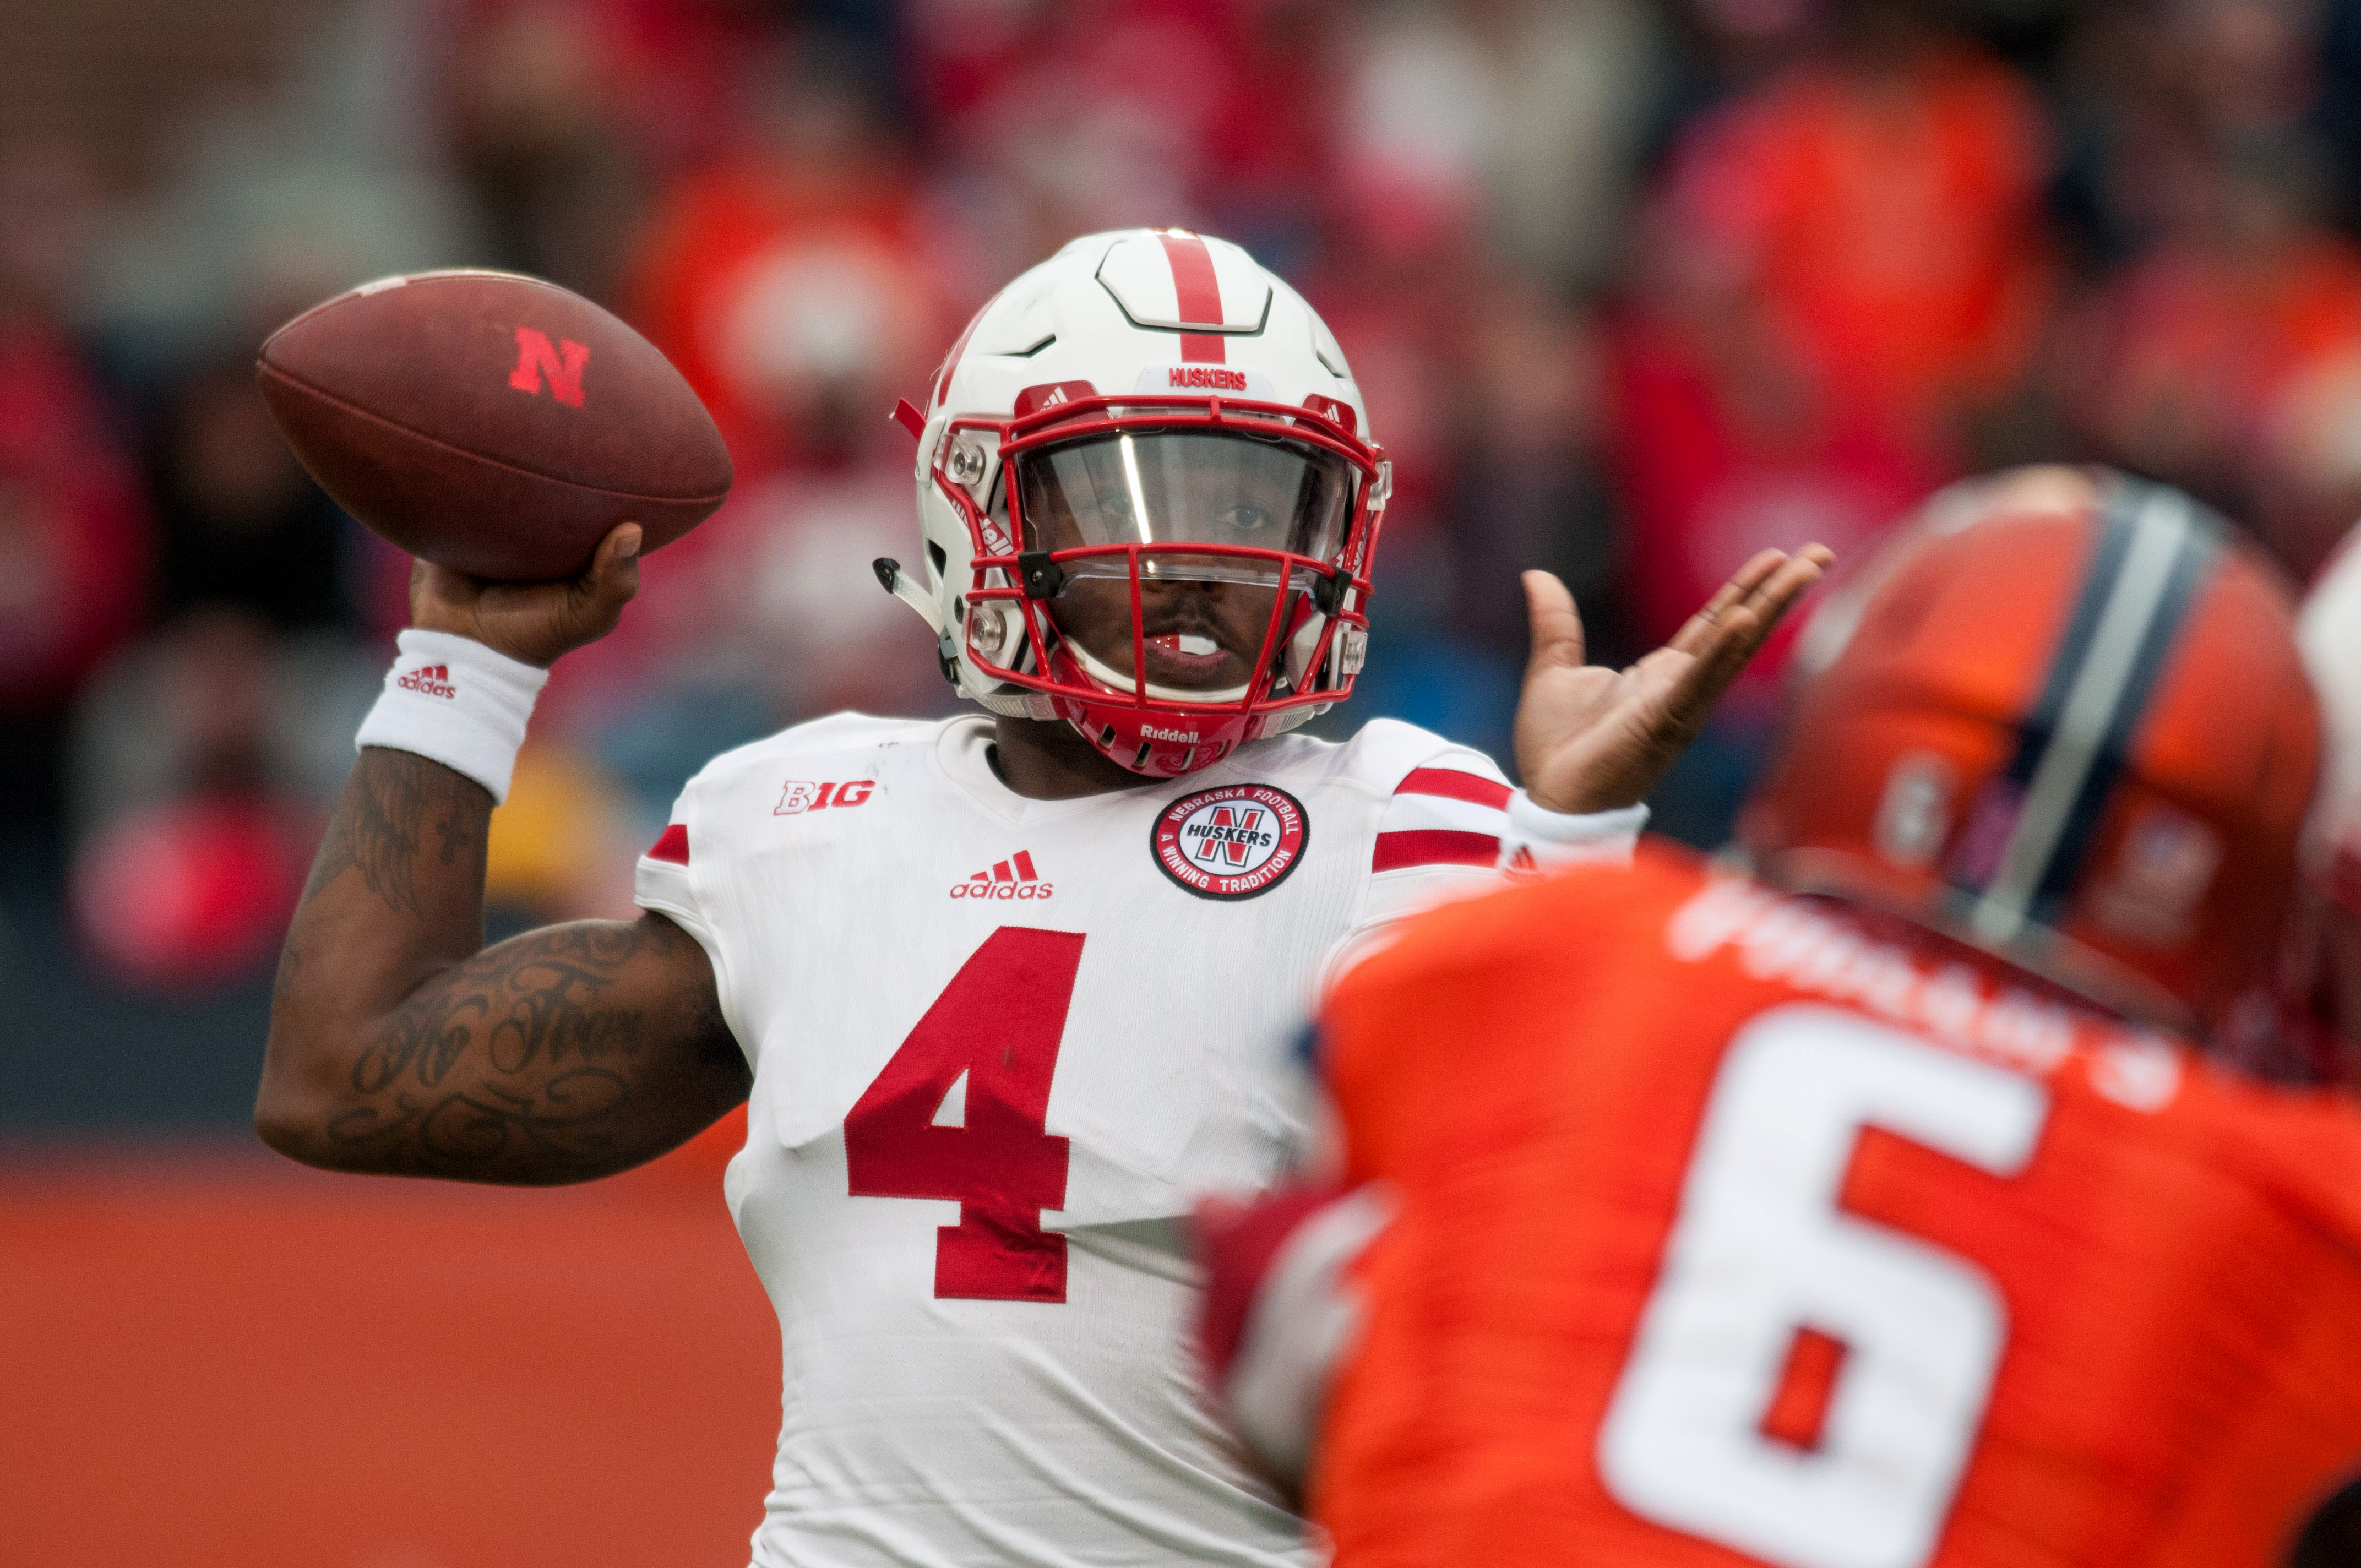 Nebraska quarterback Tommy Armstrong Jr. (4) throws during the first half of an NCAA college football game against Illinois Saturday, Oct. 3, 2015, in Champaign, Ill.  Illinois won 14-13. (AP Photo/Bradley Leeb)